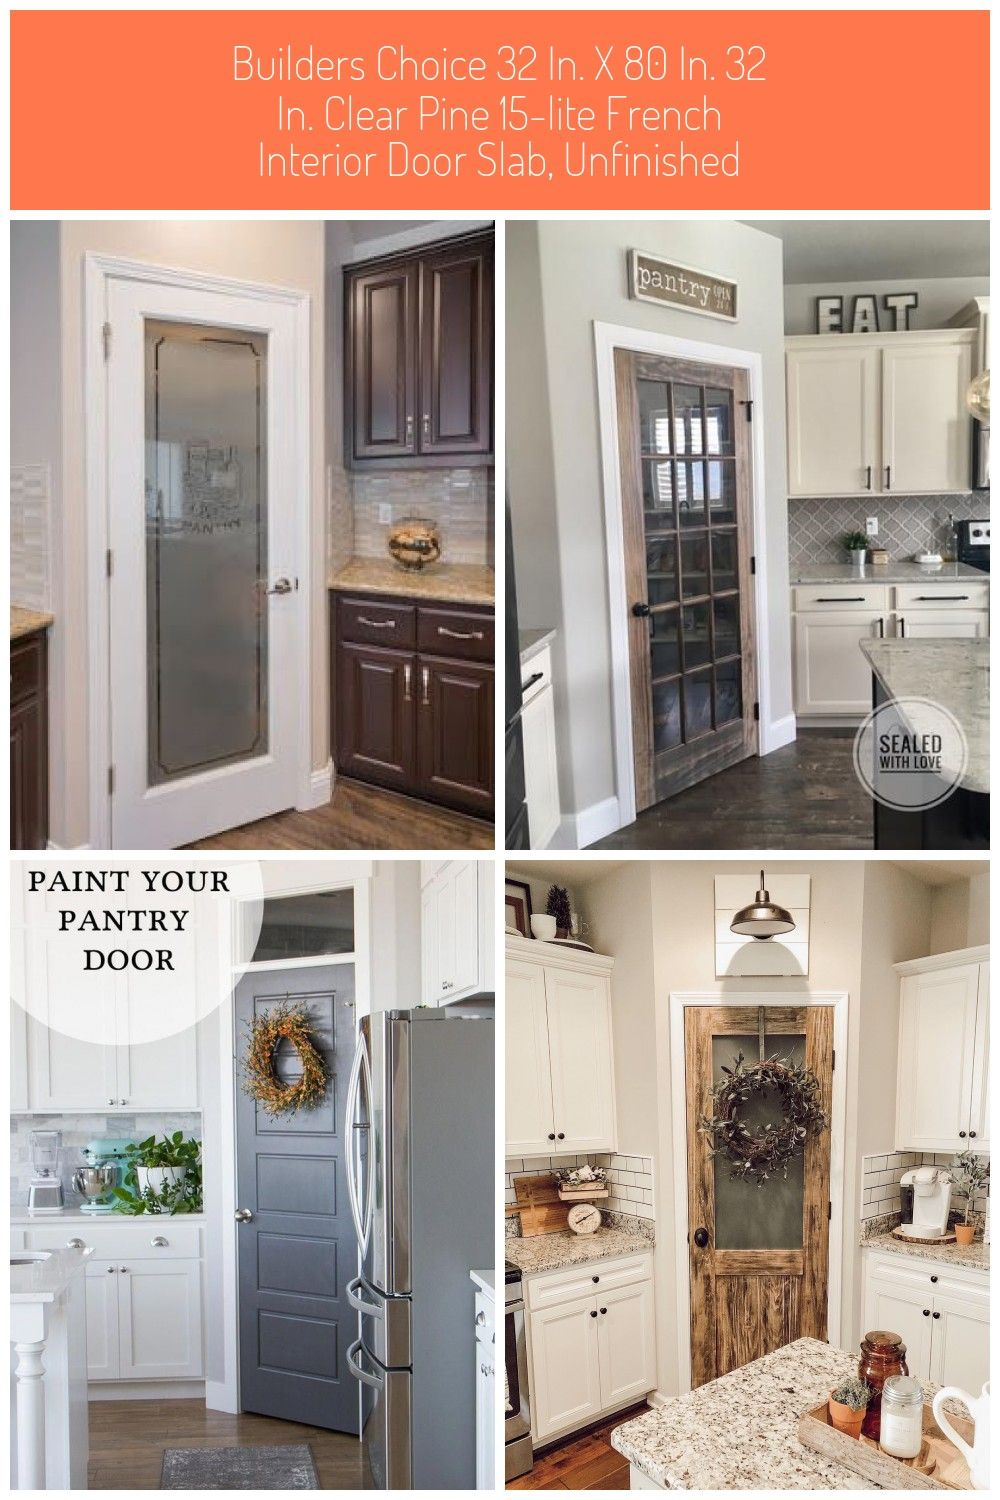 Builders Choice 15 Lite Clear Pine Doors Are Made With Soft Wood Pine Veneers For Long Lasting Style And Durability In Your Home With A Simple Traditional Desig In 2020